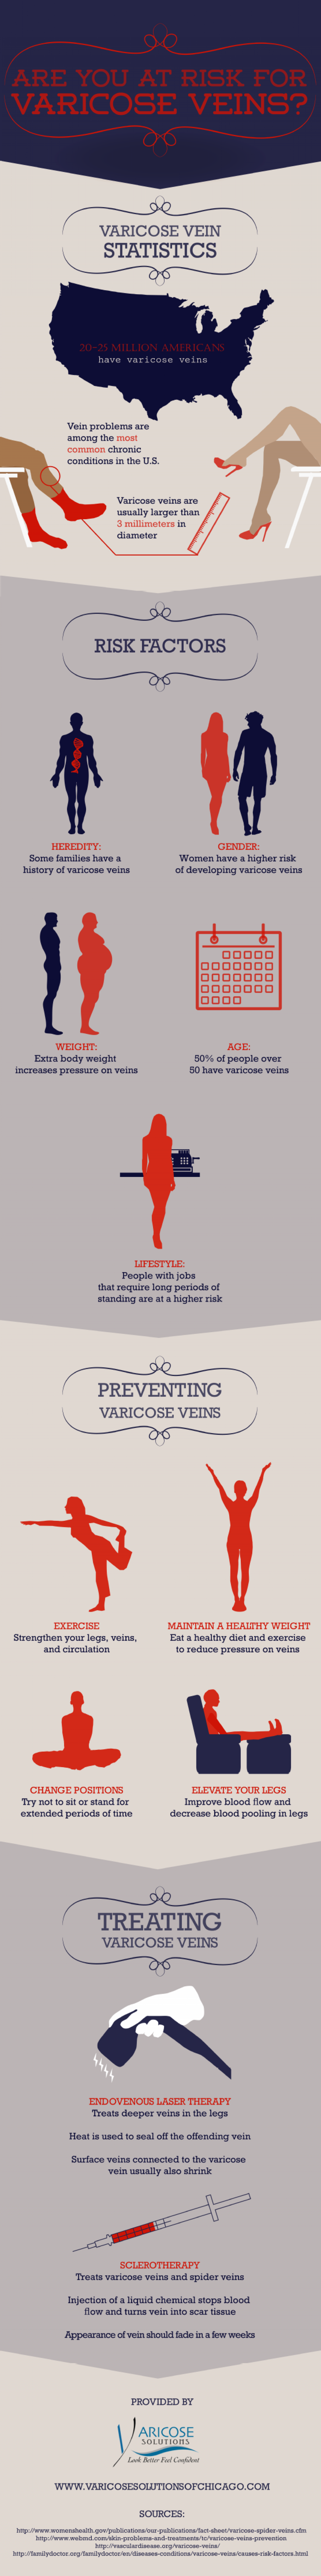 Are You at Risk for Varicose Veins? Infographic